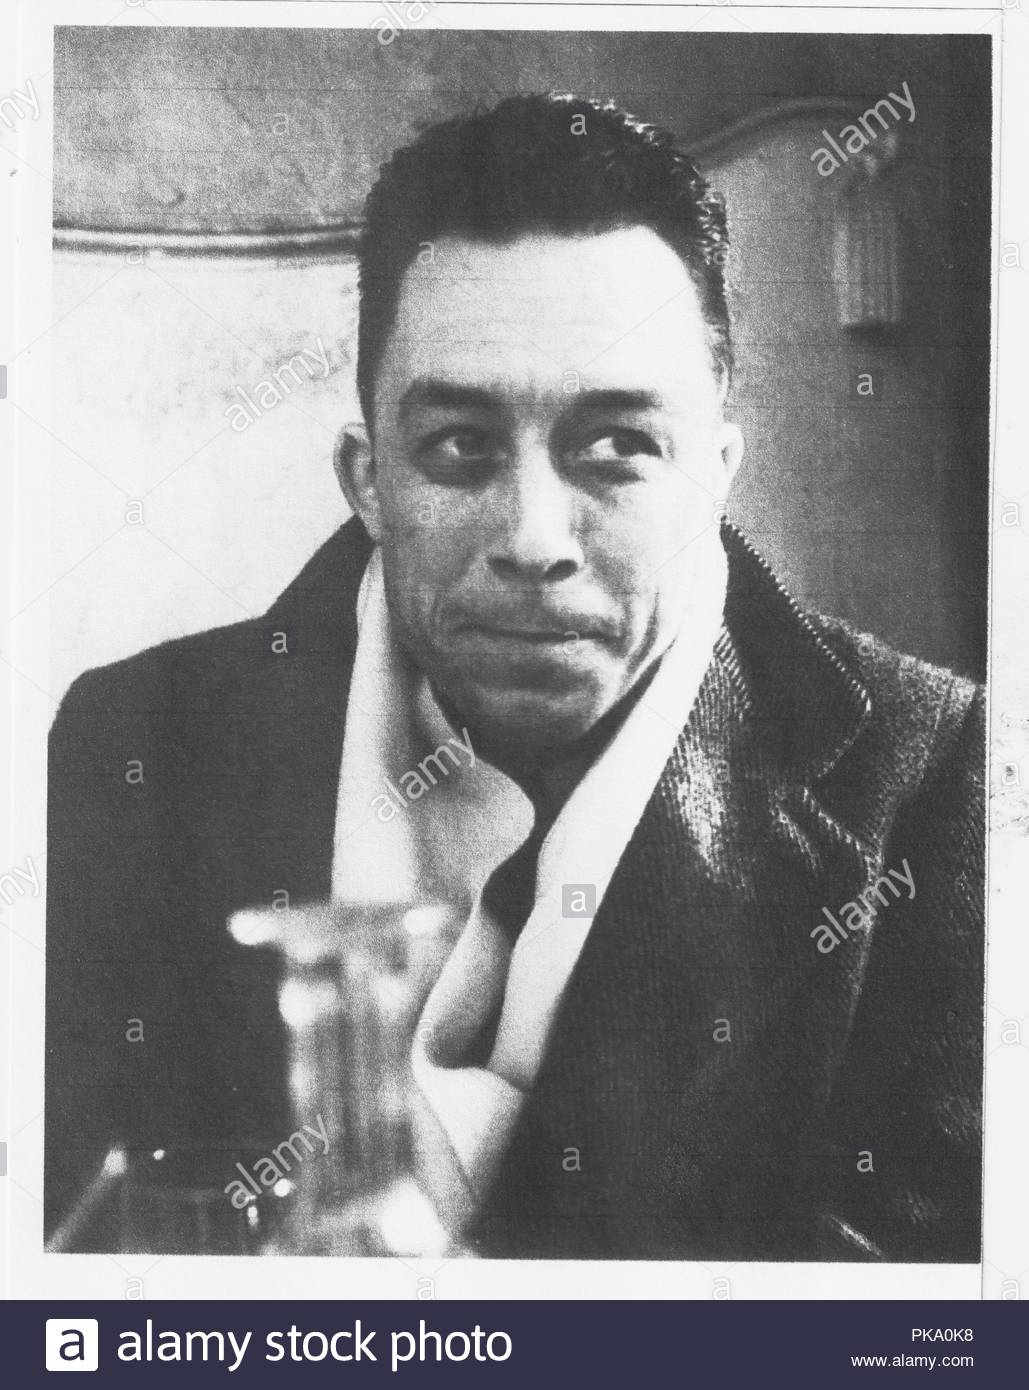 Albert Camus 7 November 1913 4 January 1960 Was A French Philosopher